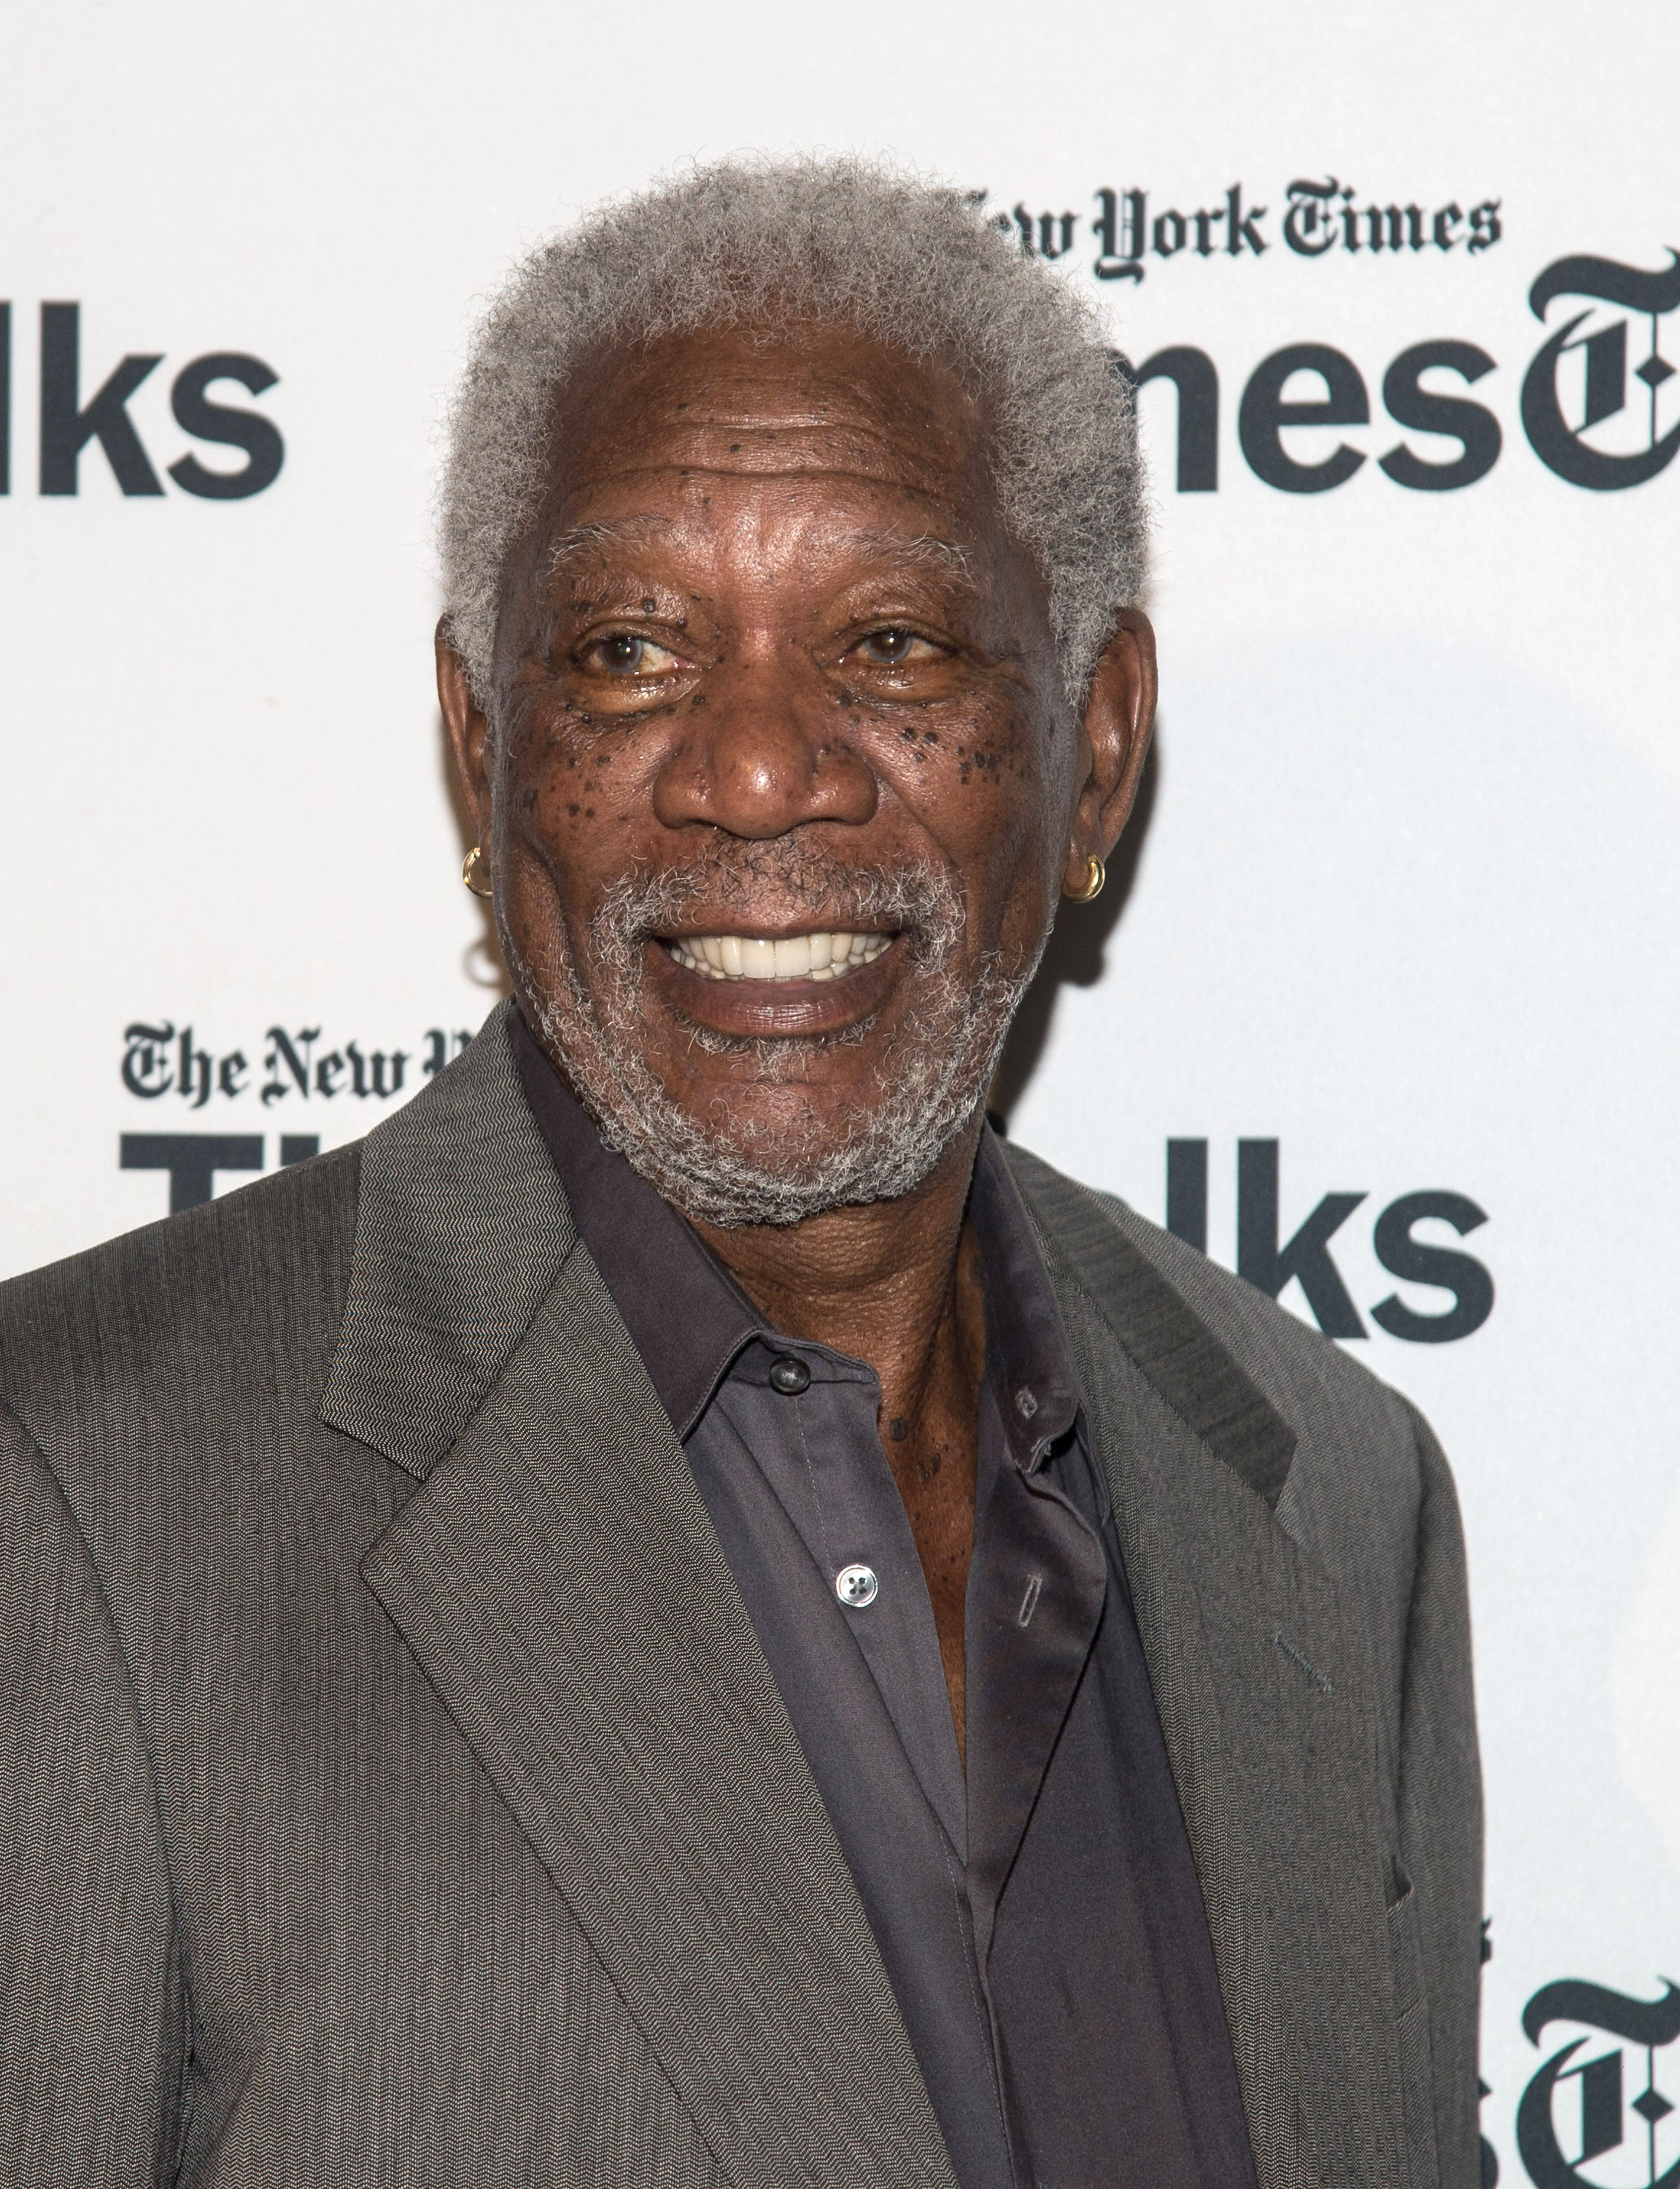 Morgan Freeman attends the Times Talks Presents: An Evening With The Cast Of  Madame Secretary  at Haft Auditorium at FIT on September 29, 2015 in New York City.